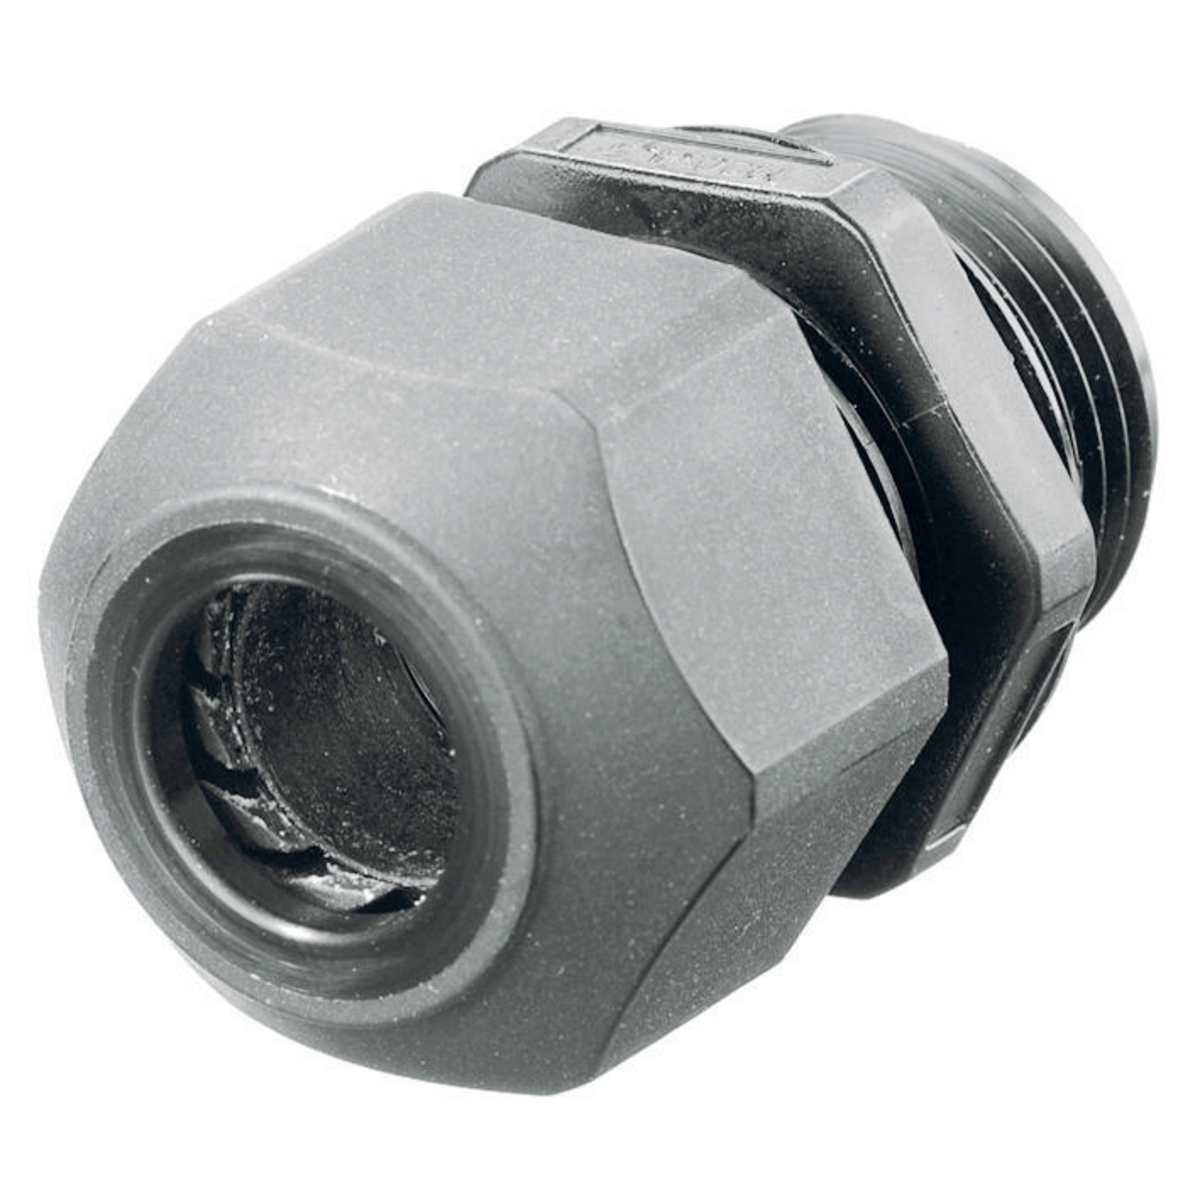 HUBSEC75GA CORD CONN, EURO, .45IN -.71IN , 3/4IN NPT, GY ,SEC75GA, HUBBELL